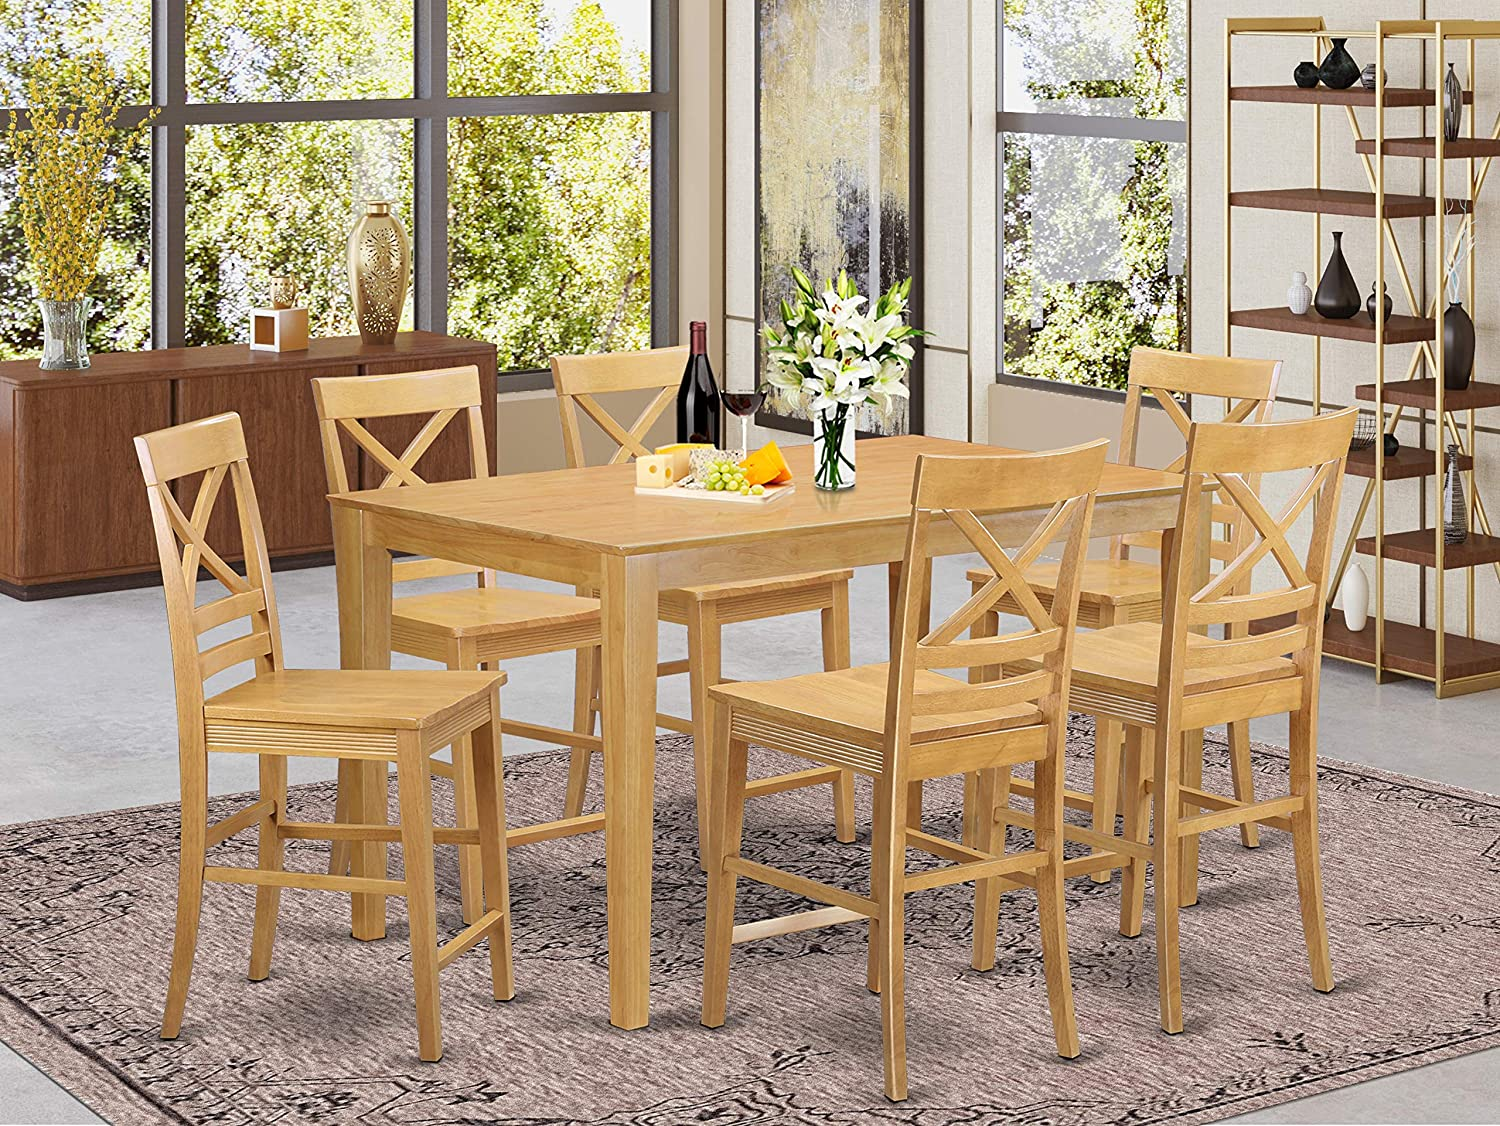 9 PC counter height Table and chair set   Table and 9 high Chairs.